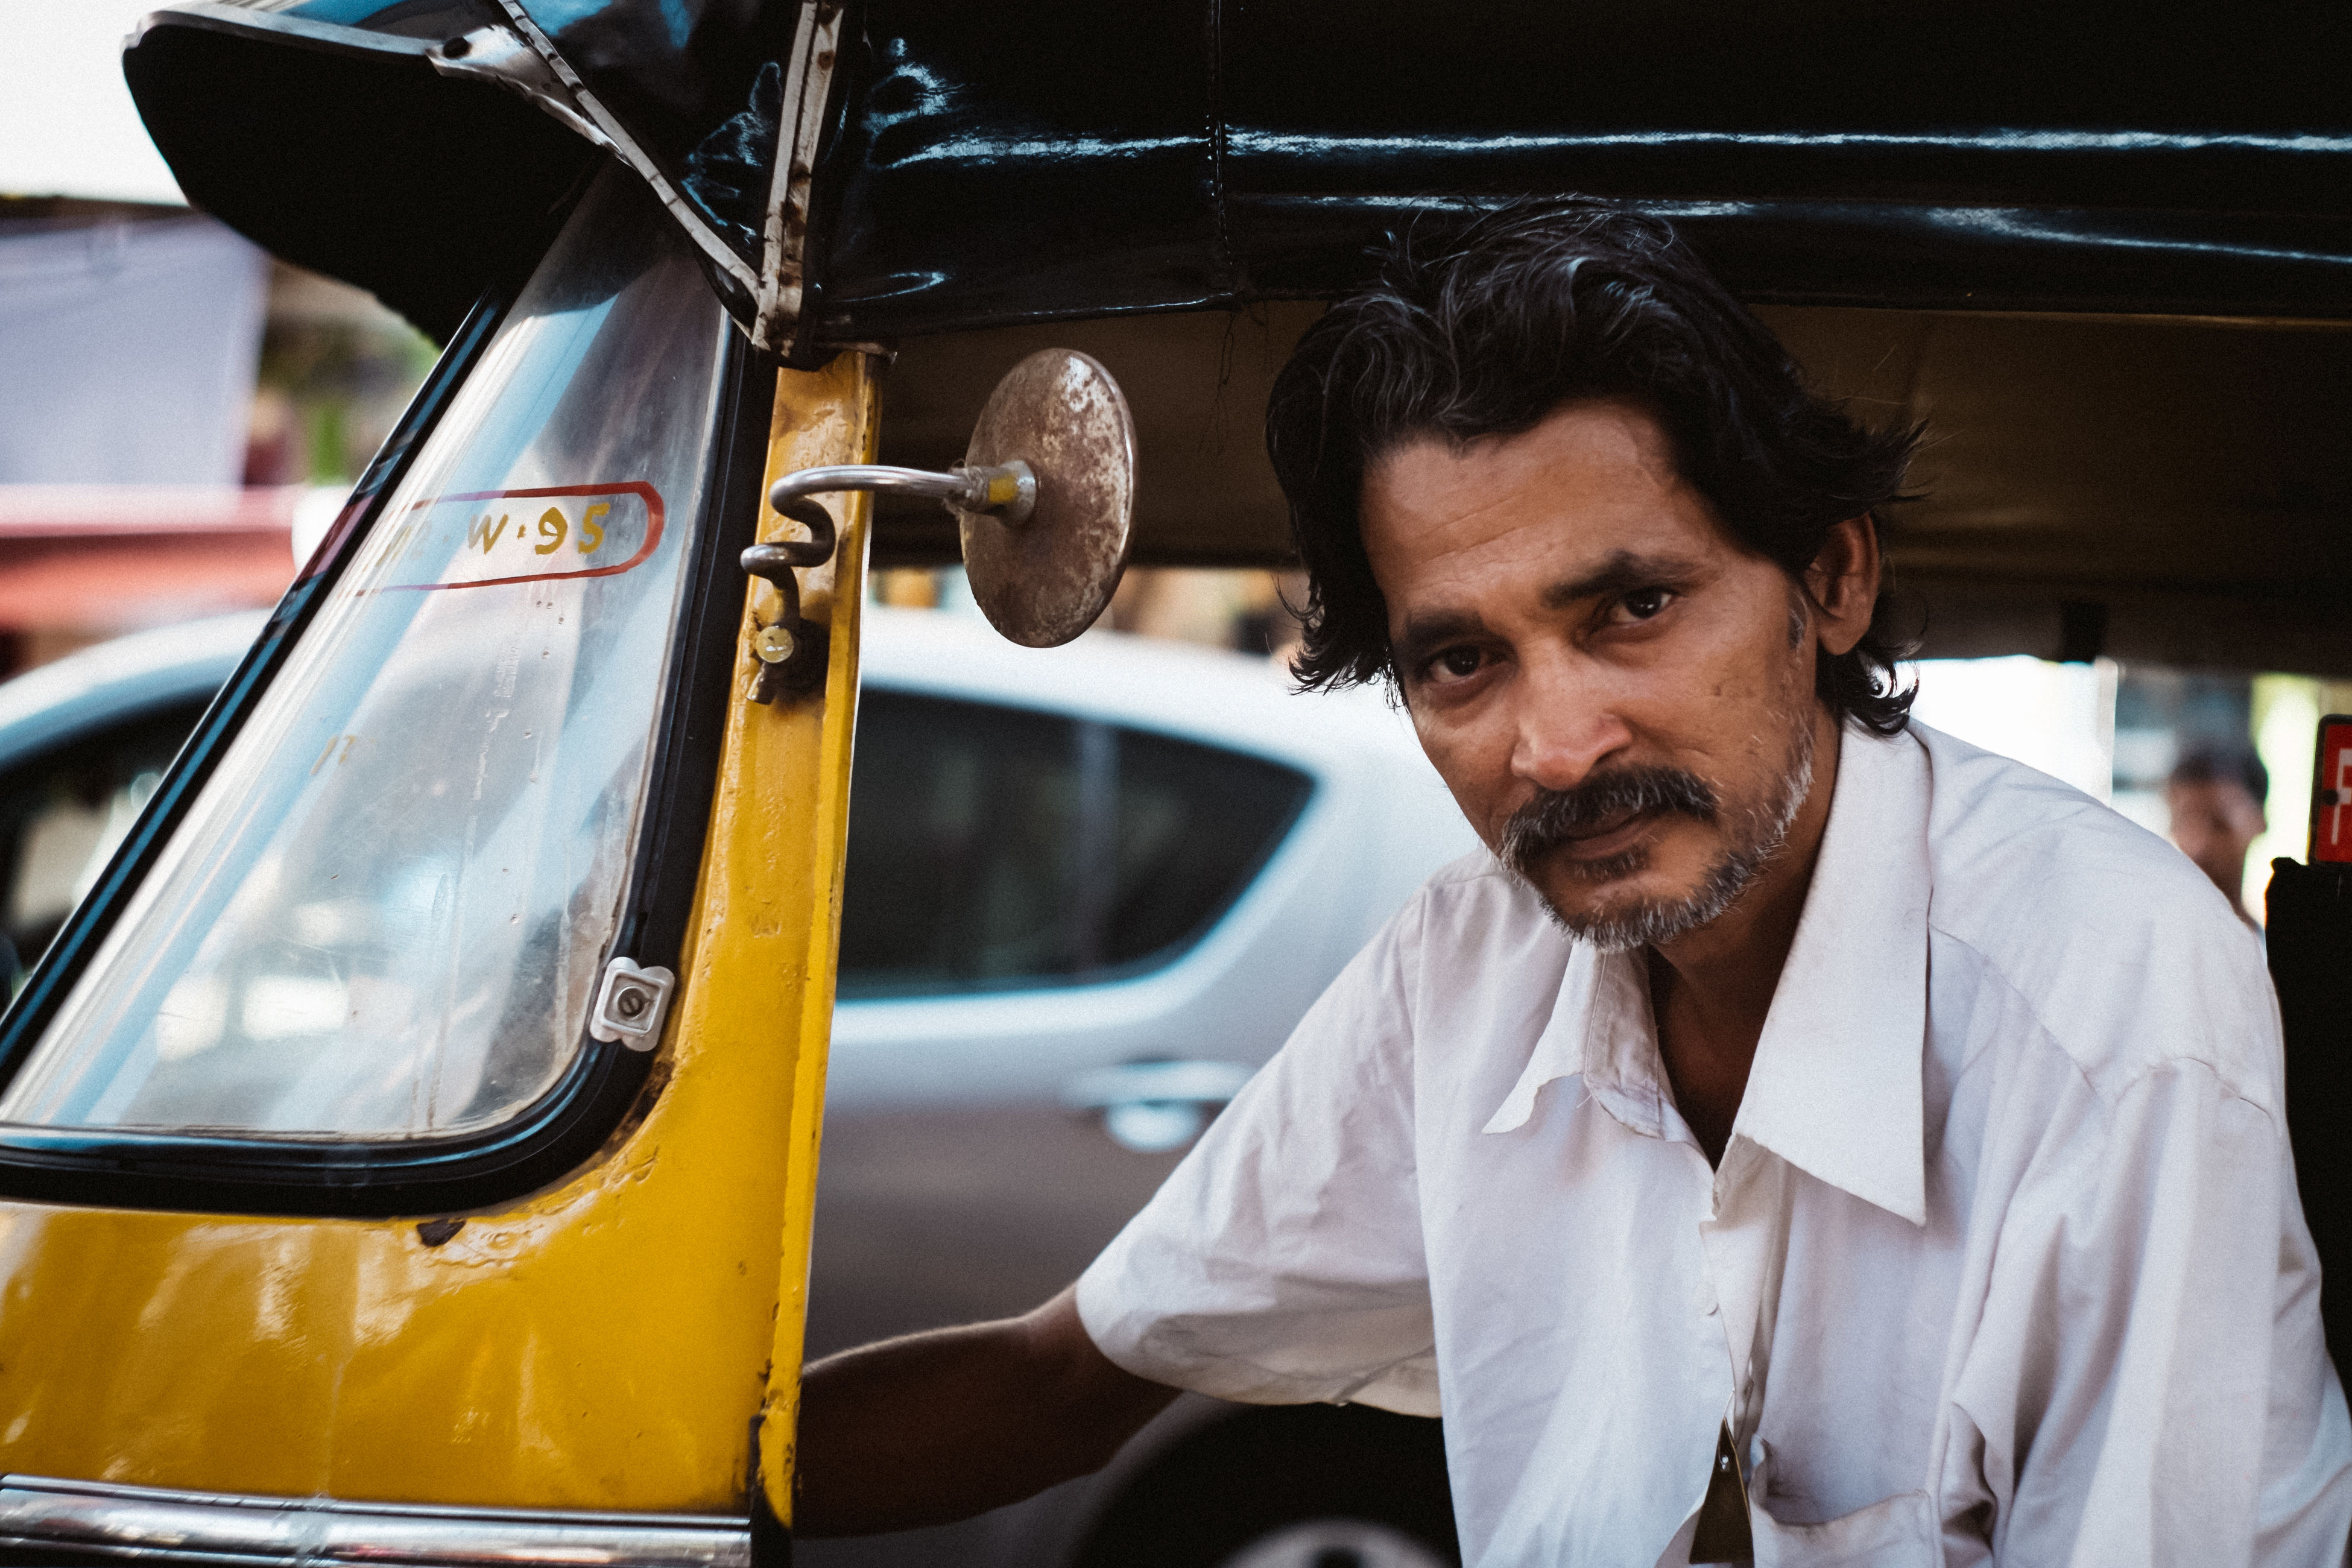 transportation, mode of transport, land vehicle, car, lifestyles, travel, men, vehicle interior, leisure activity, looking at camera, close-up, front view, young men, portrait, public transportation, focus on foreground, casual clothing, day